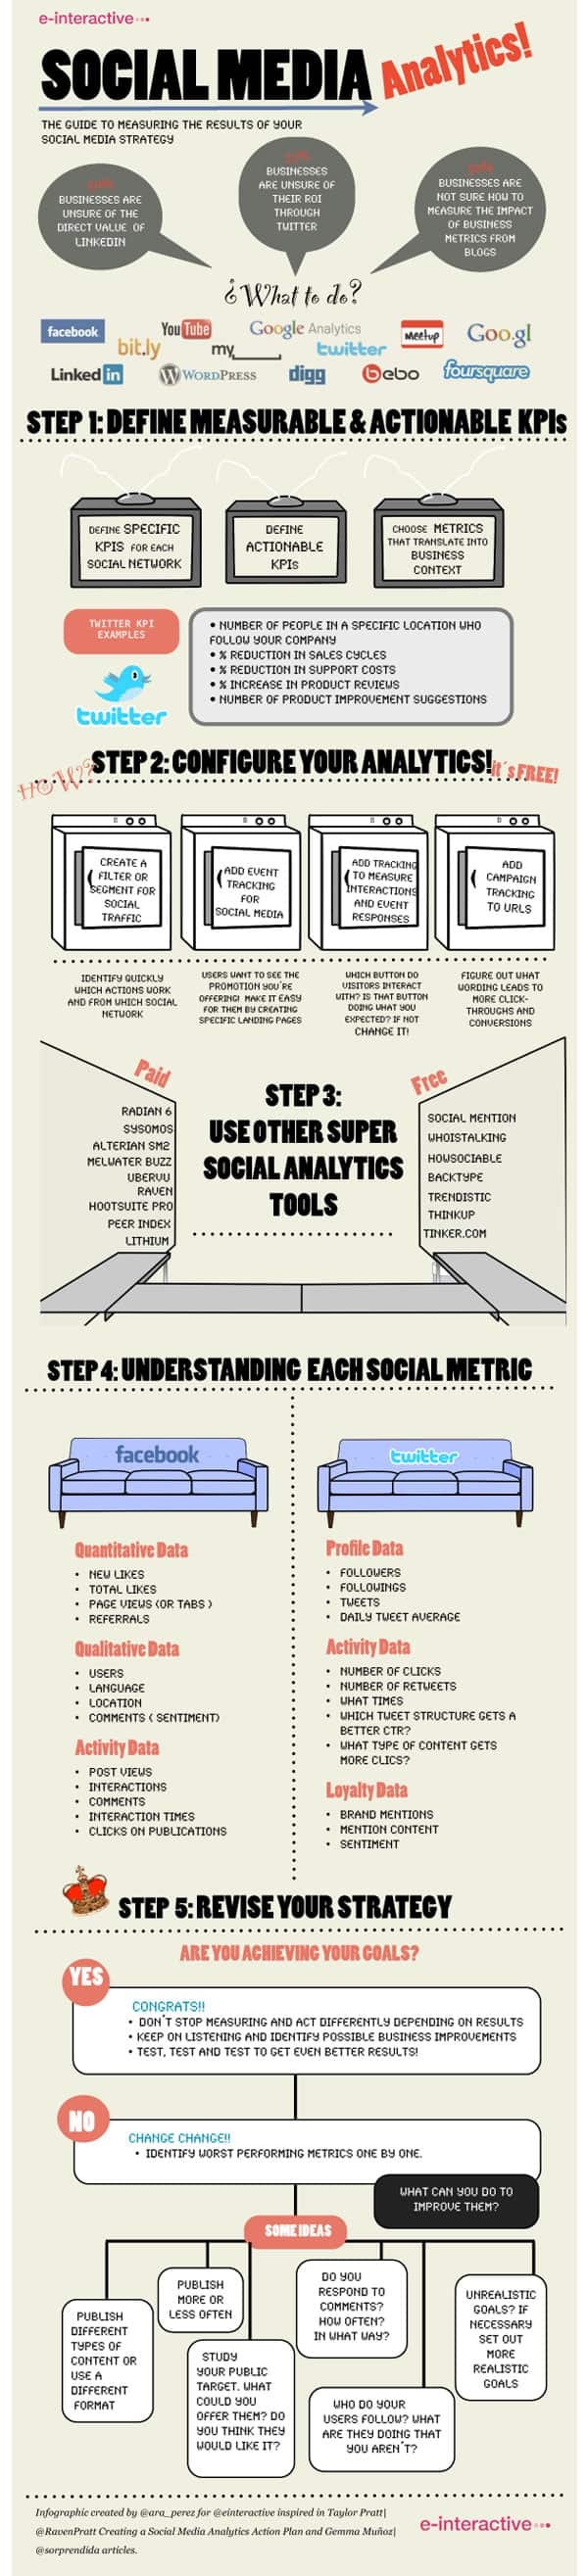 Infographic: Social Media Analytics